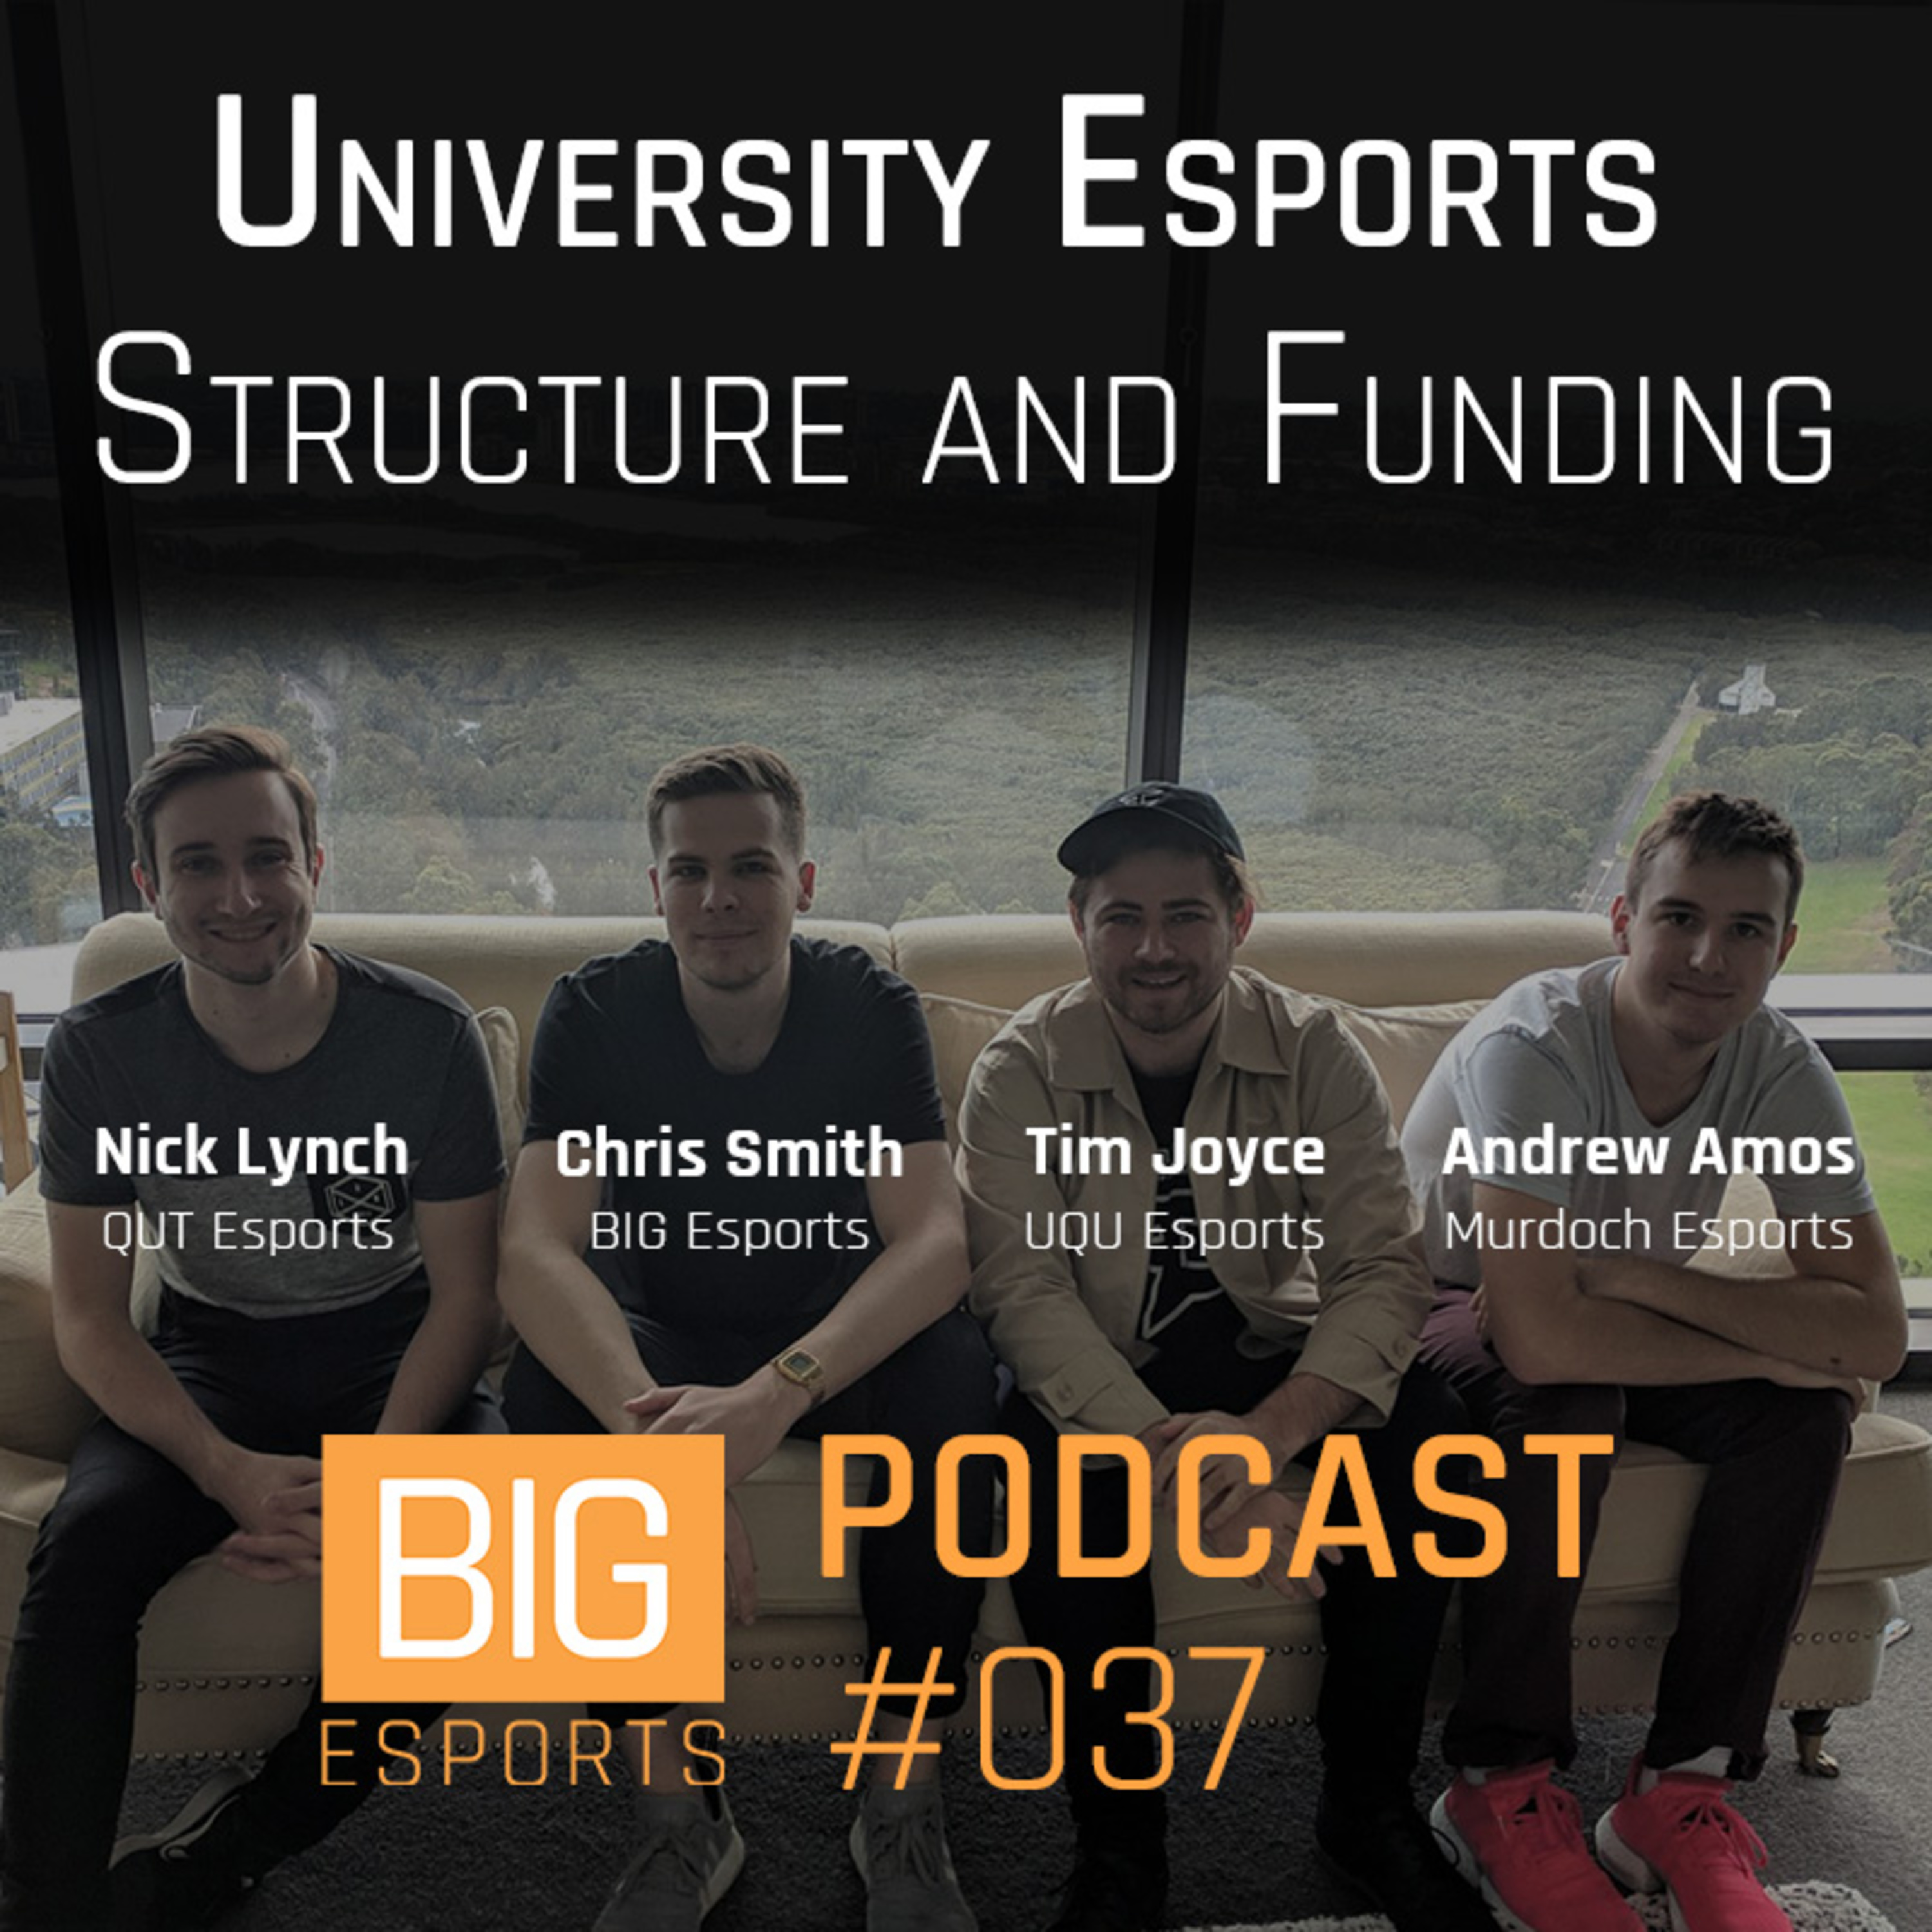 #037 - University Esports, Structure and Funding